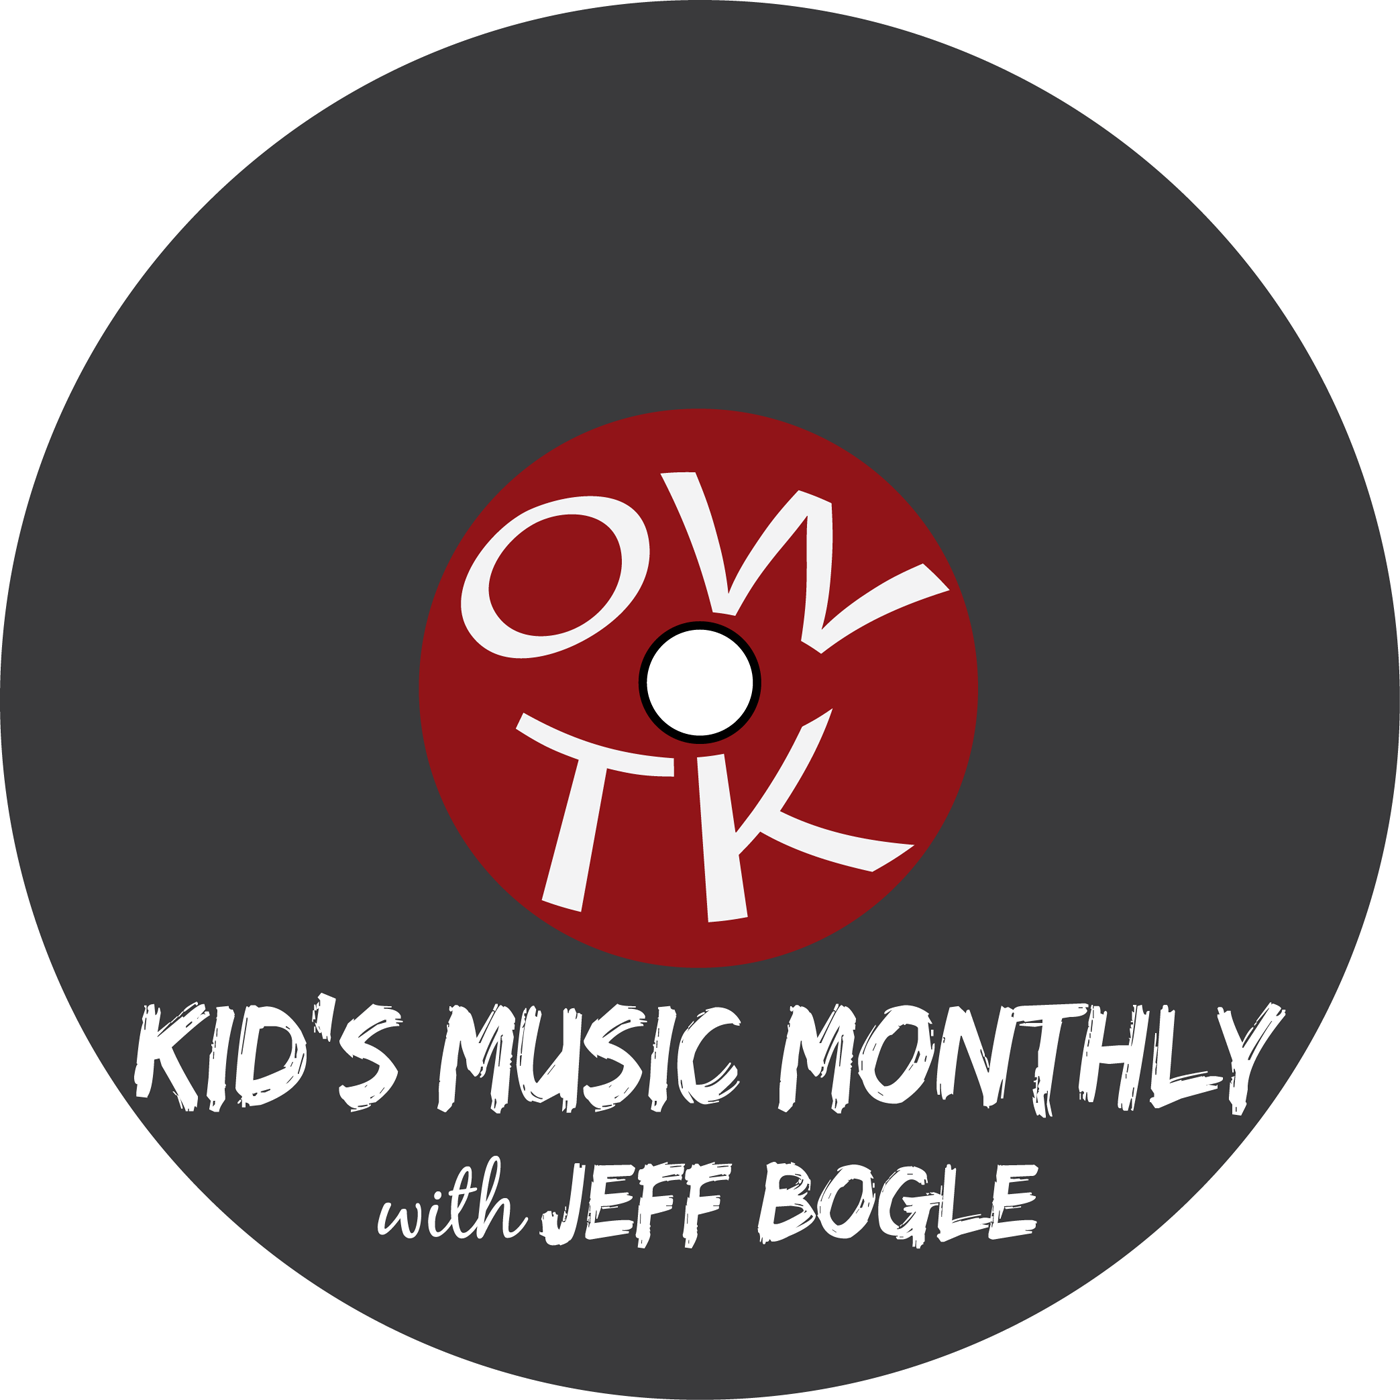 OWTK Kid's Music Monthly Podcast logo